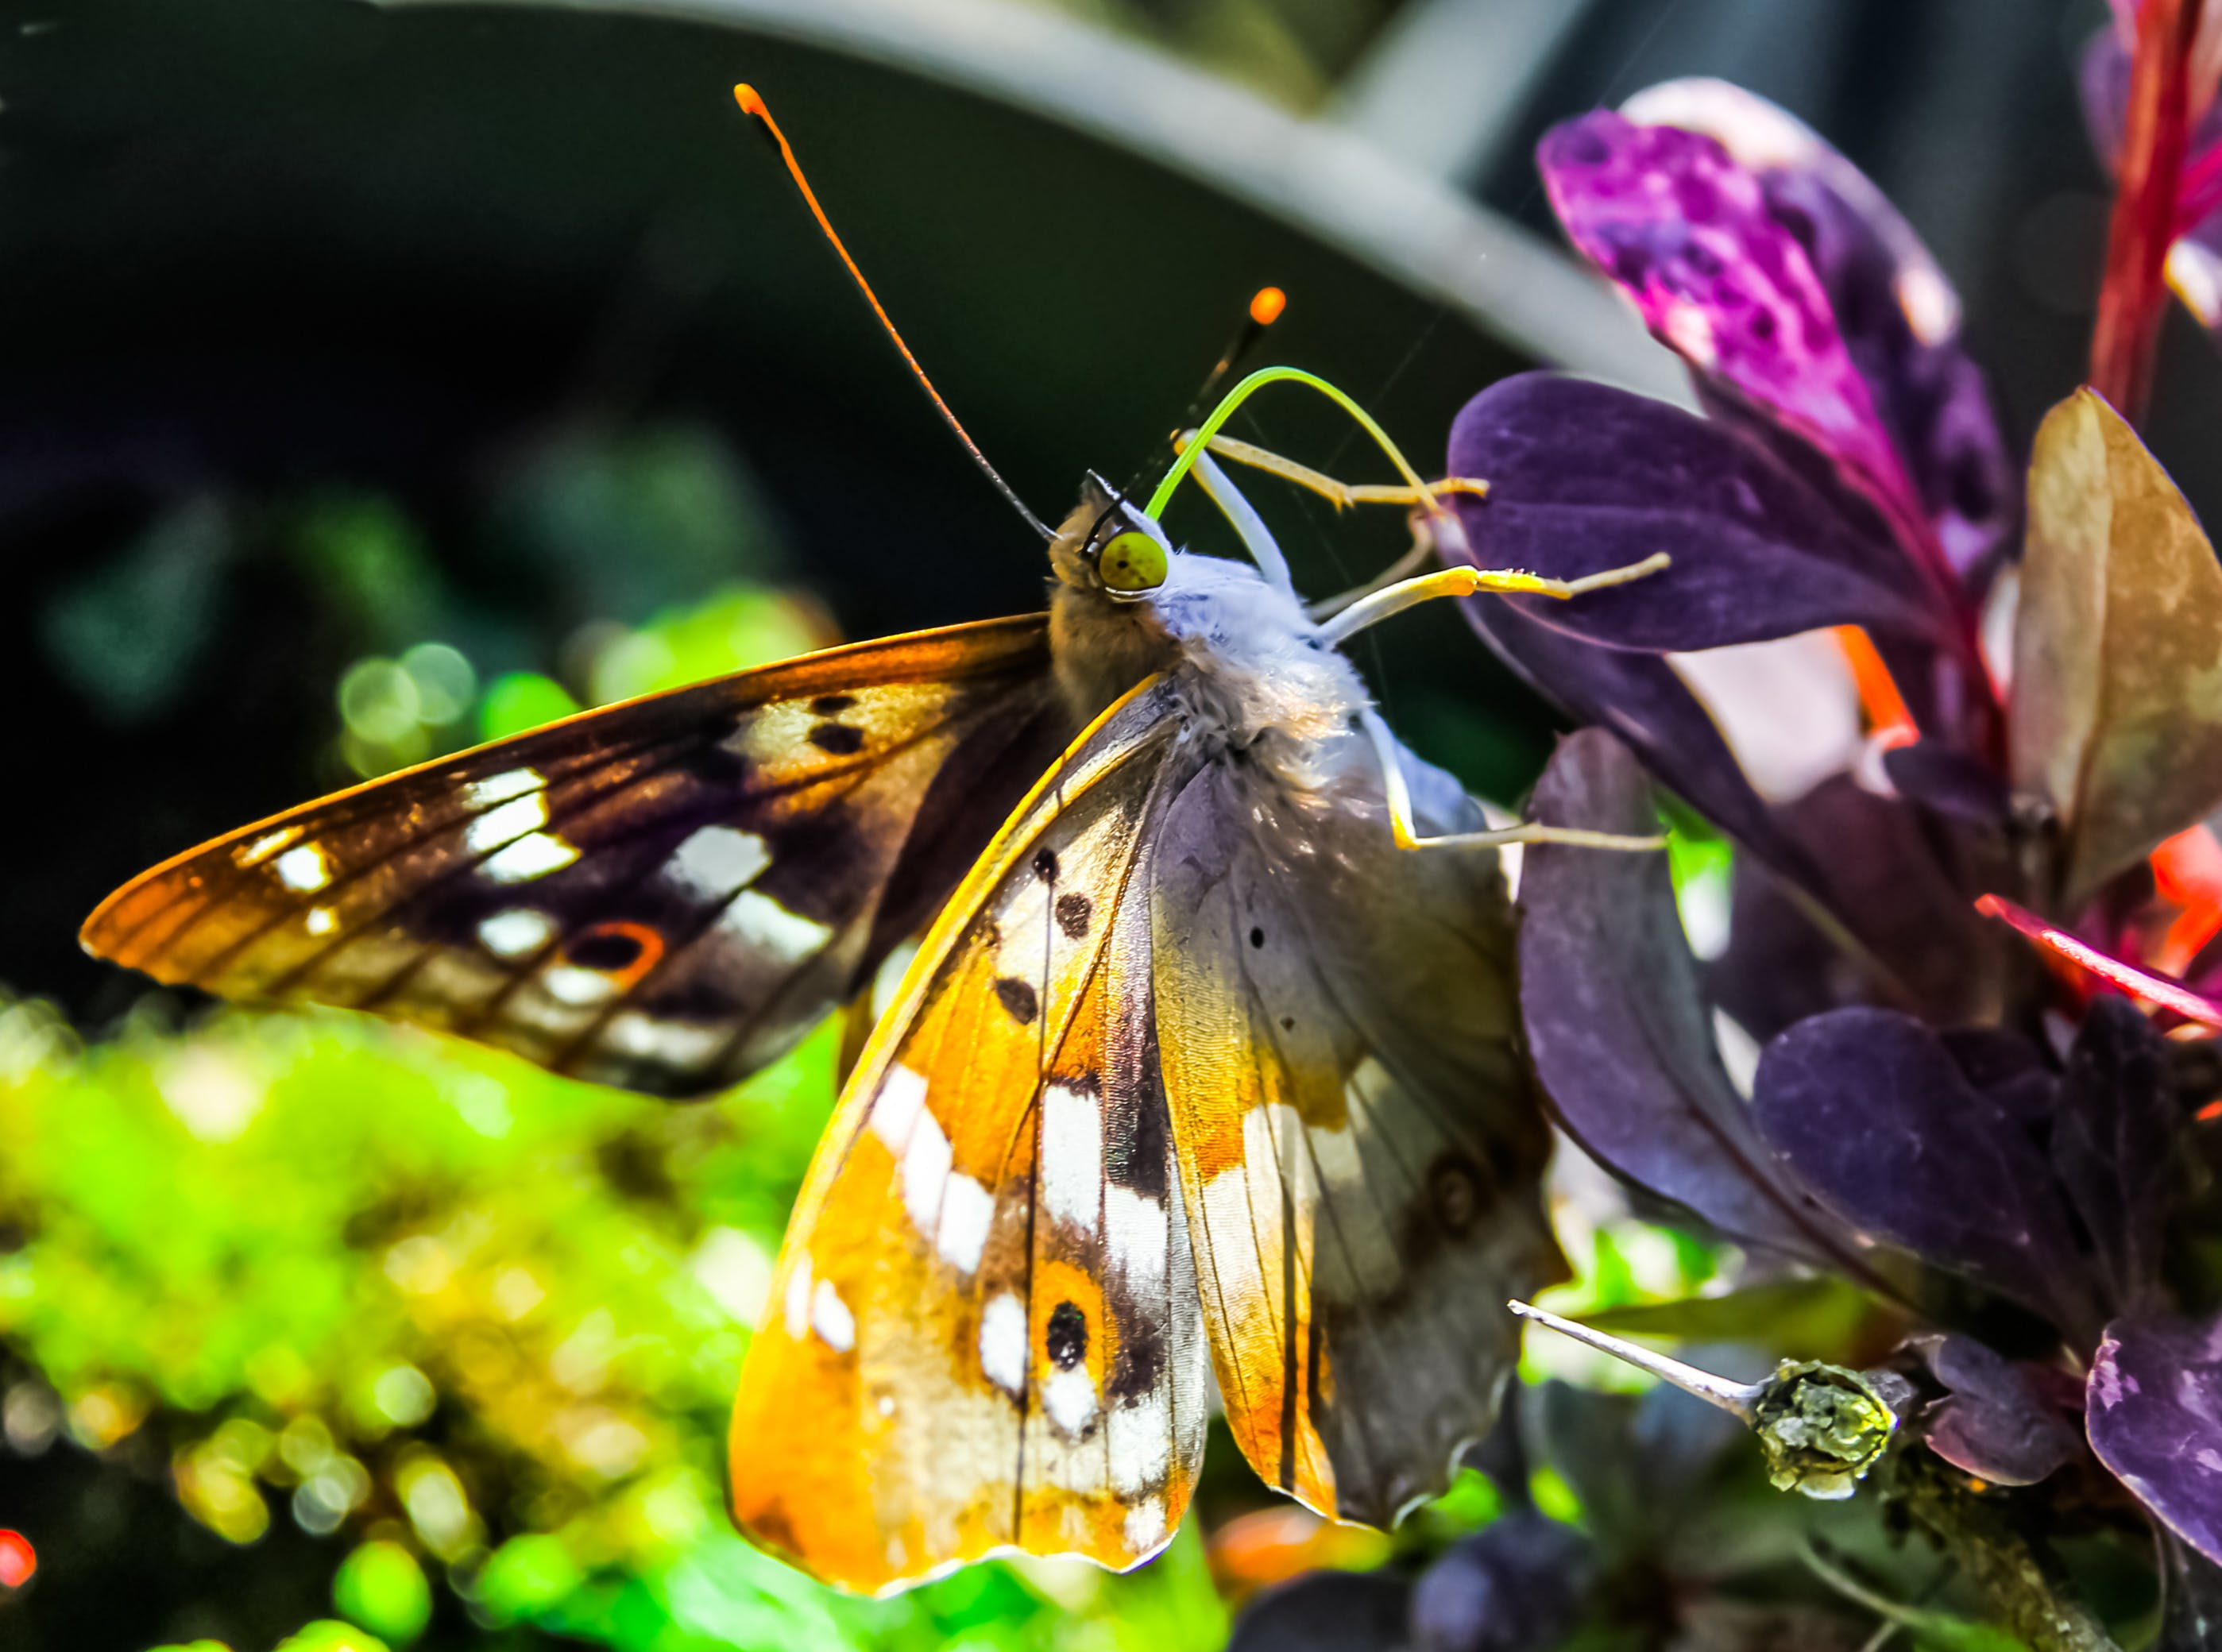 Closeup Photo of Brown and White Butterfly on Purple Leaves